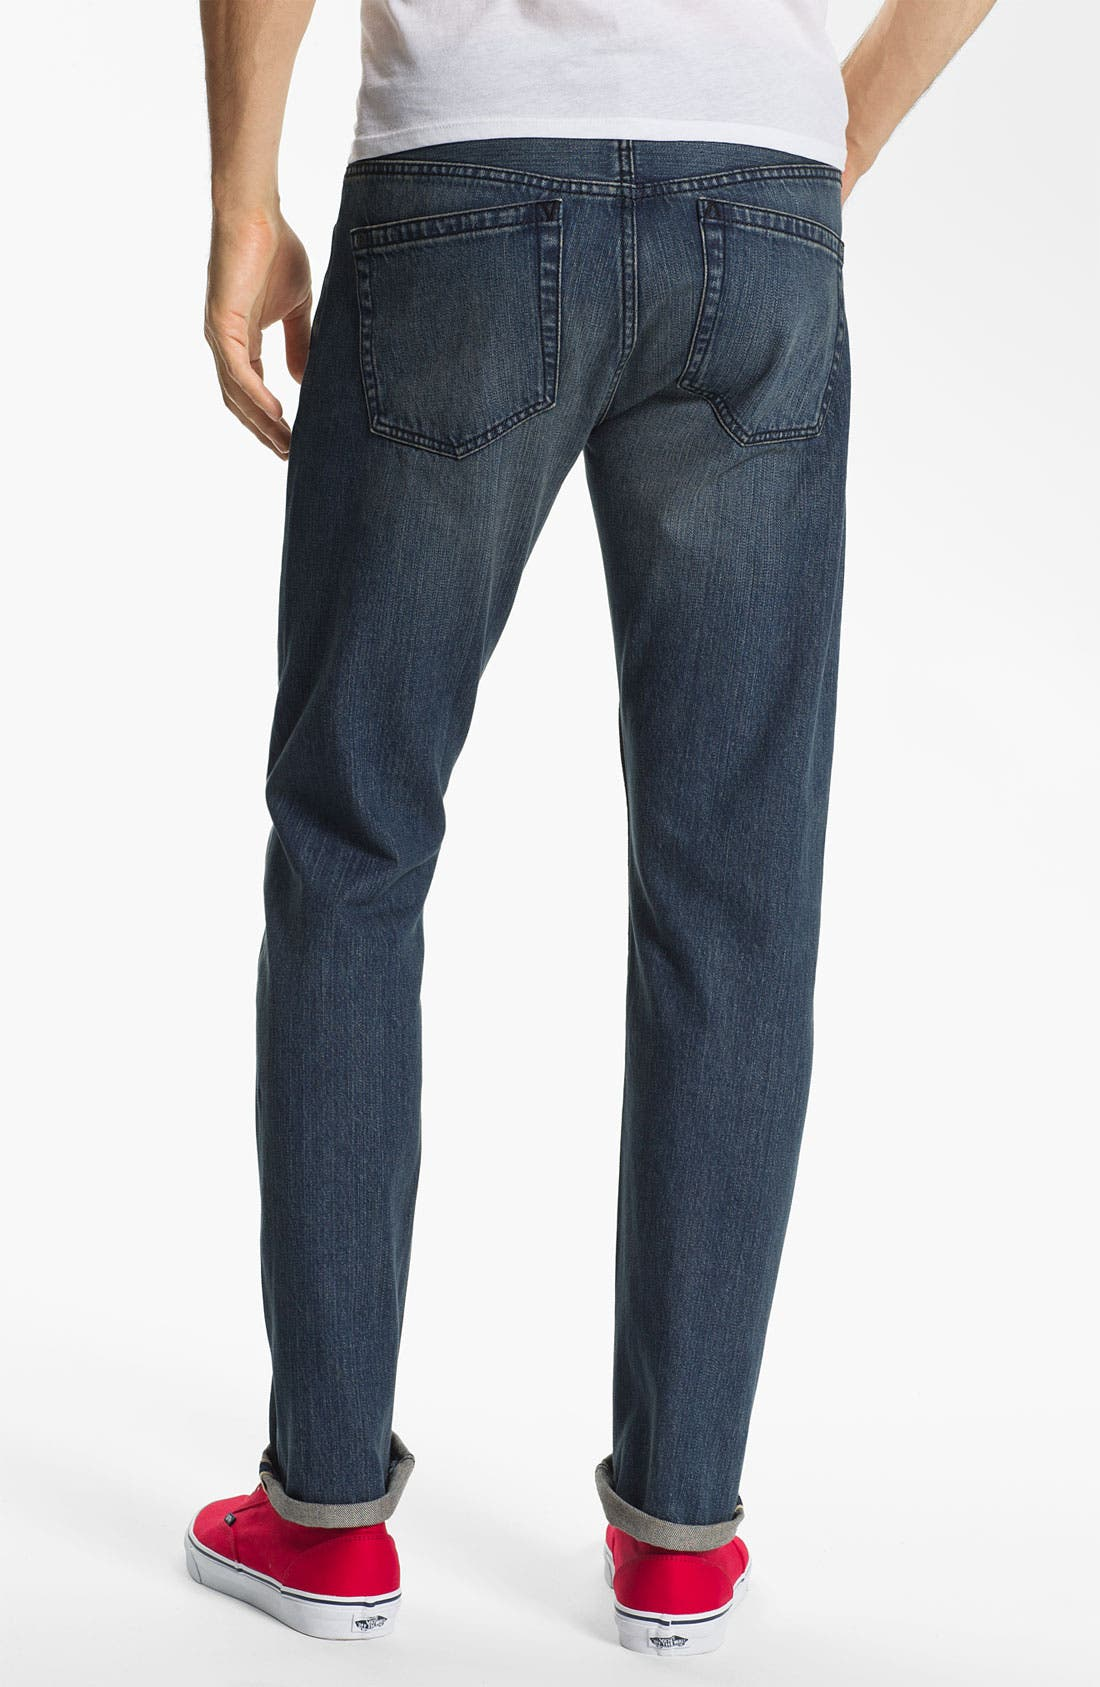 Alternate Image 1 Selected - RVCA Super Slim Straight Leg Selvedge Jeans (Easy Does It)